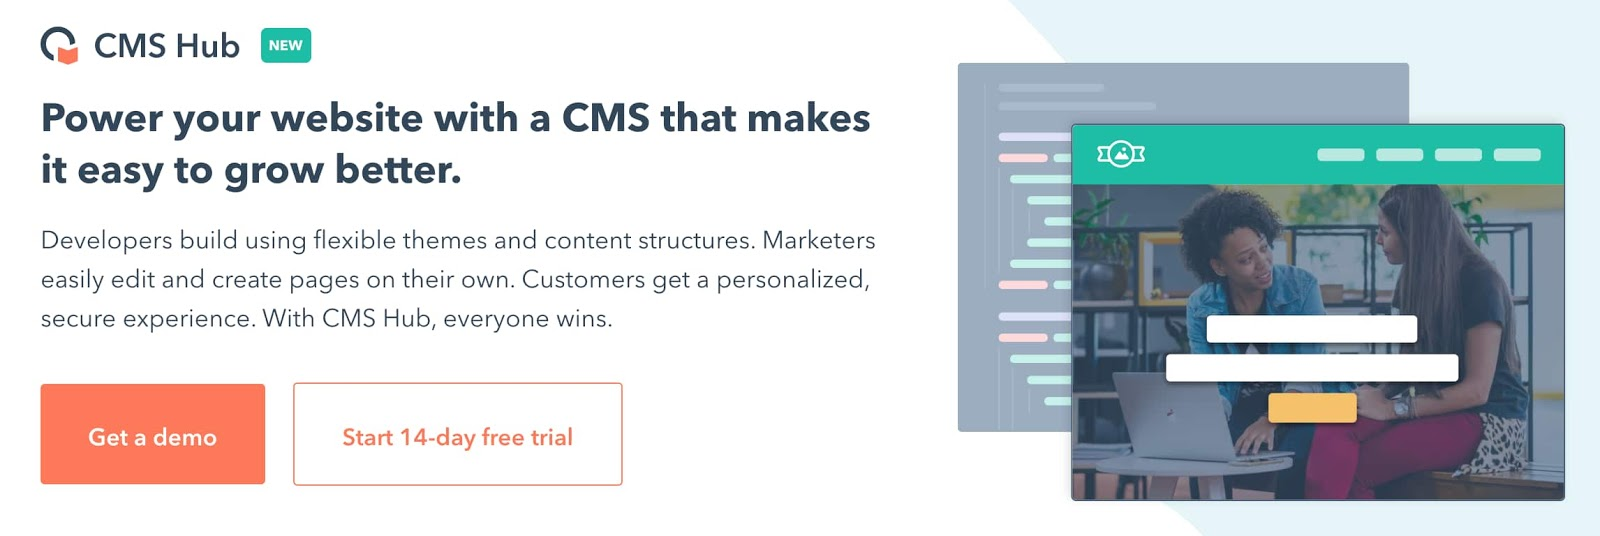 the landing page for the video content management system CMS Hub